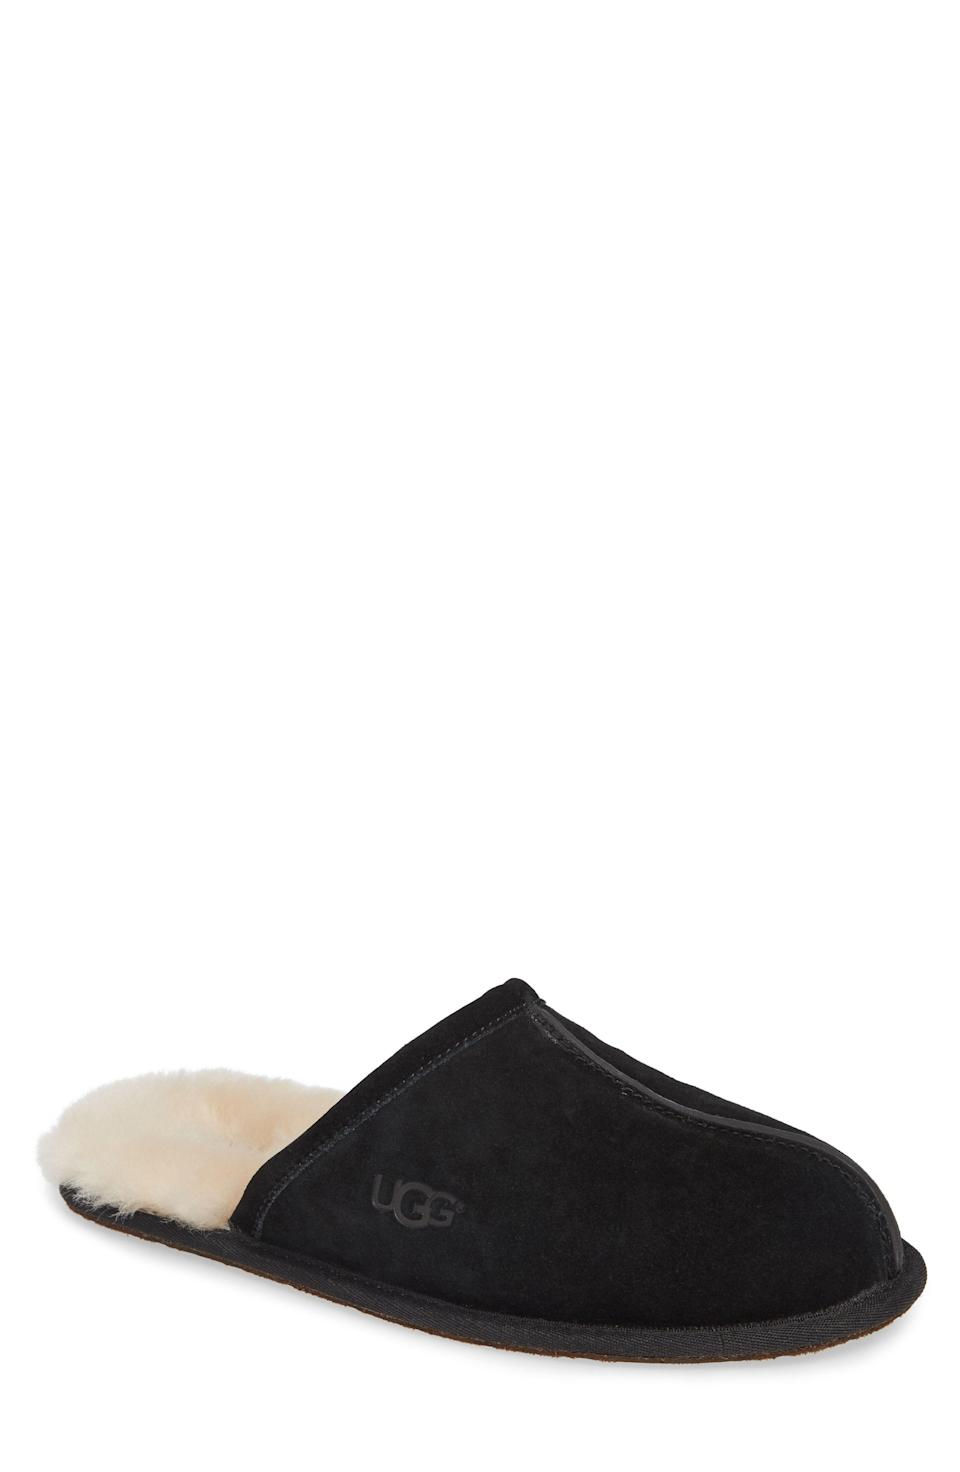 """<p><strong>UGG</strong></p><p>nordstrom.com</p><p><strong>$79.95</strong></p><p><a href=""""https://go.redirectingat.com?id=74968X1596630&url=https%3A%2F%2Fshop.nordstrom.com%2Fs%2Fugg-scuff-slipper-men%2F2777632&sref=https%3A%2F%2Fwww.townandcountrymag.com%2Fstyle%2Fmens-fashion%2Fnews%2Fg2335%2Fbest-fathers-day-gifts%2F"""" rel=""""nofollow noopener"""" target=""""_blank"""" data-ylk=""""slk:Shop Now"""" class=""""link rapid-noclick-resp"""">Shop Now</a></p><p>For the dad who spends a lot of time on his feet these <a href=""""https://www.townandcountrymag.com/style/mens-fashion/g31813514/best-slippers-for-men/"""" rel=""""nofollow noopener"""" target=""""_blank"""" data-ylk=""""slk:comfortable, cushioning slippers"""" class=""""link rapid-noclick-resp"""">comfortable, cushioning slippers</a> will be the perfect fit.</p>"""